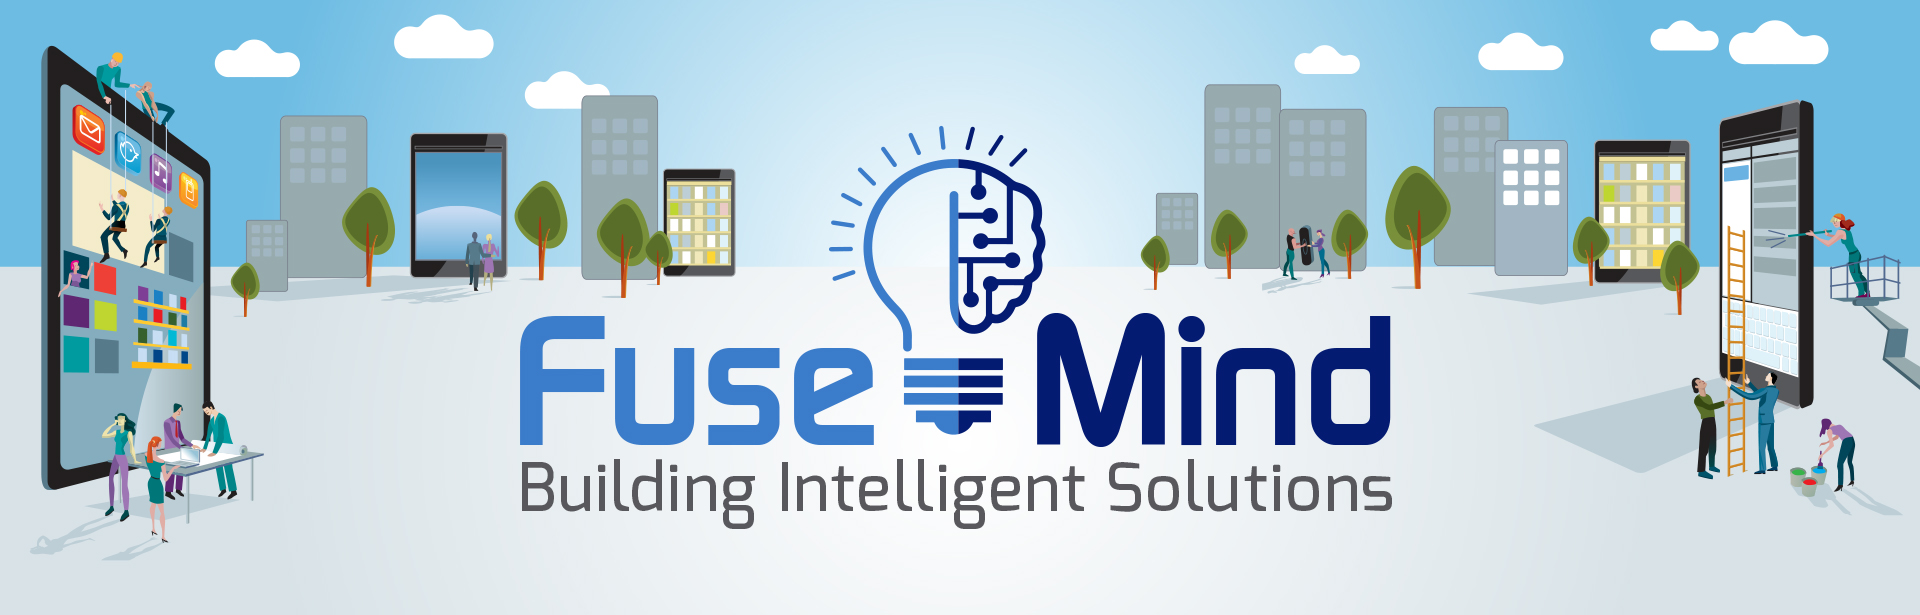 FuseMind -- We Build Intelligent Solutions